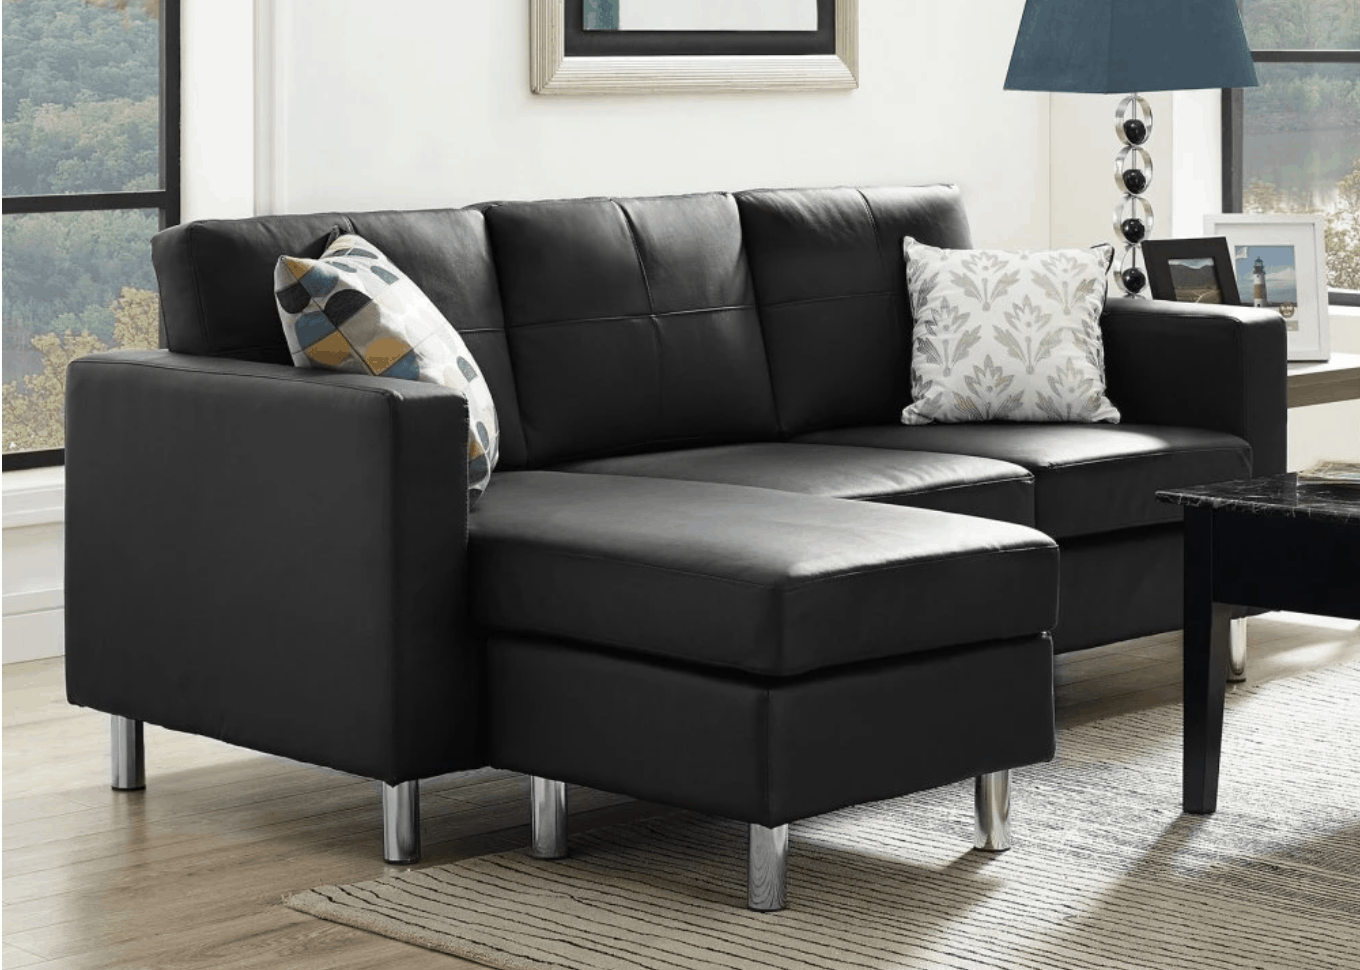 6 Types of Small Sectional Sofas for Small Spaces